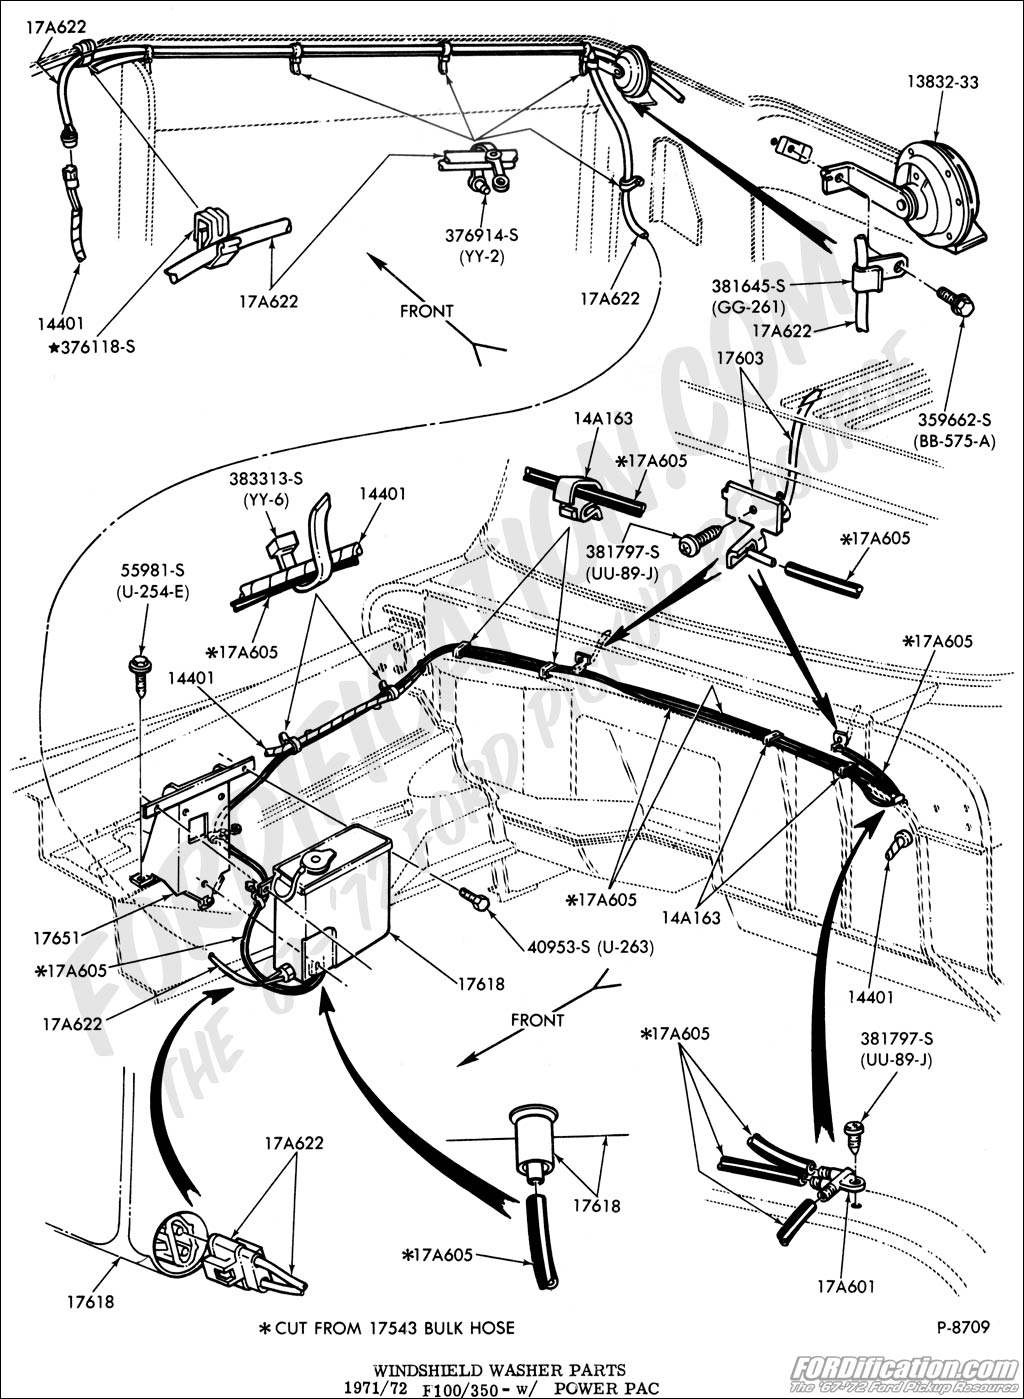 gmc truck schematics wiring diagram database 3-Way Switch Wiring Diagram 1965 gmc truck wiring diagram of fuse box wiring diagram database 2006 gmc sierra wiring diagram